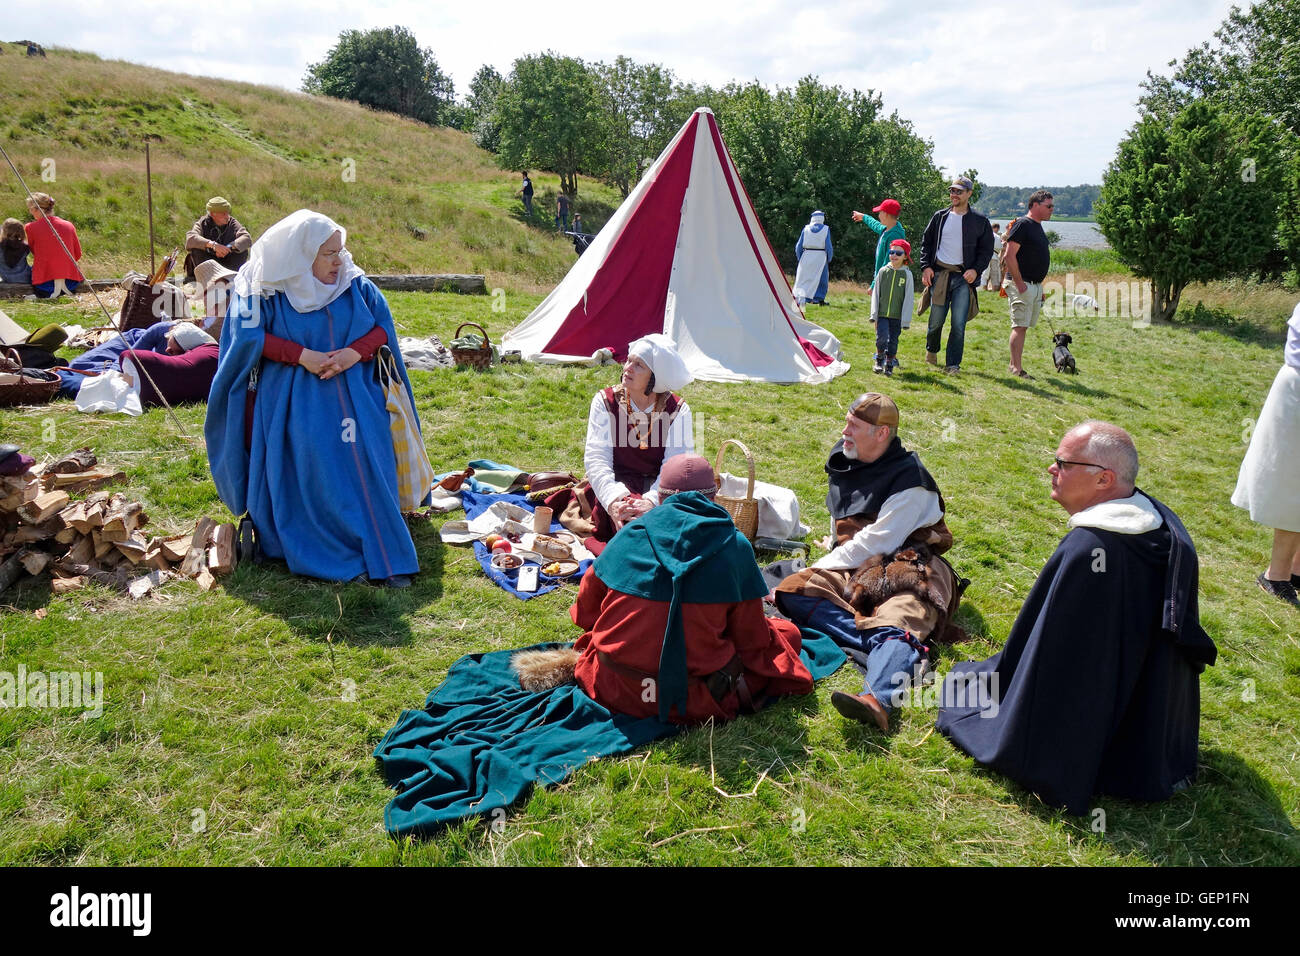 People dressed in medieval robes have picnic on lawn. Re-enactment, Halland . Sweden - Stock Image